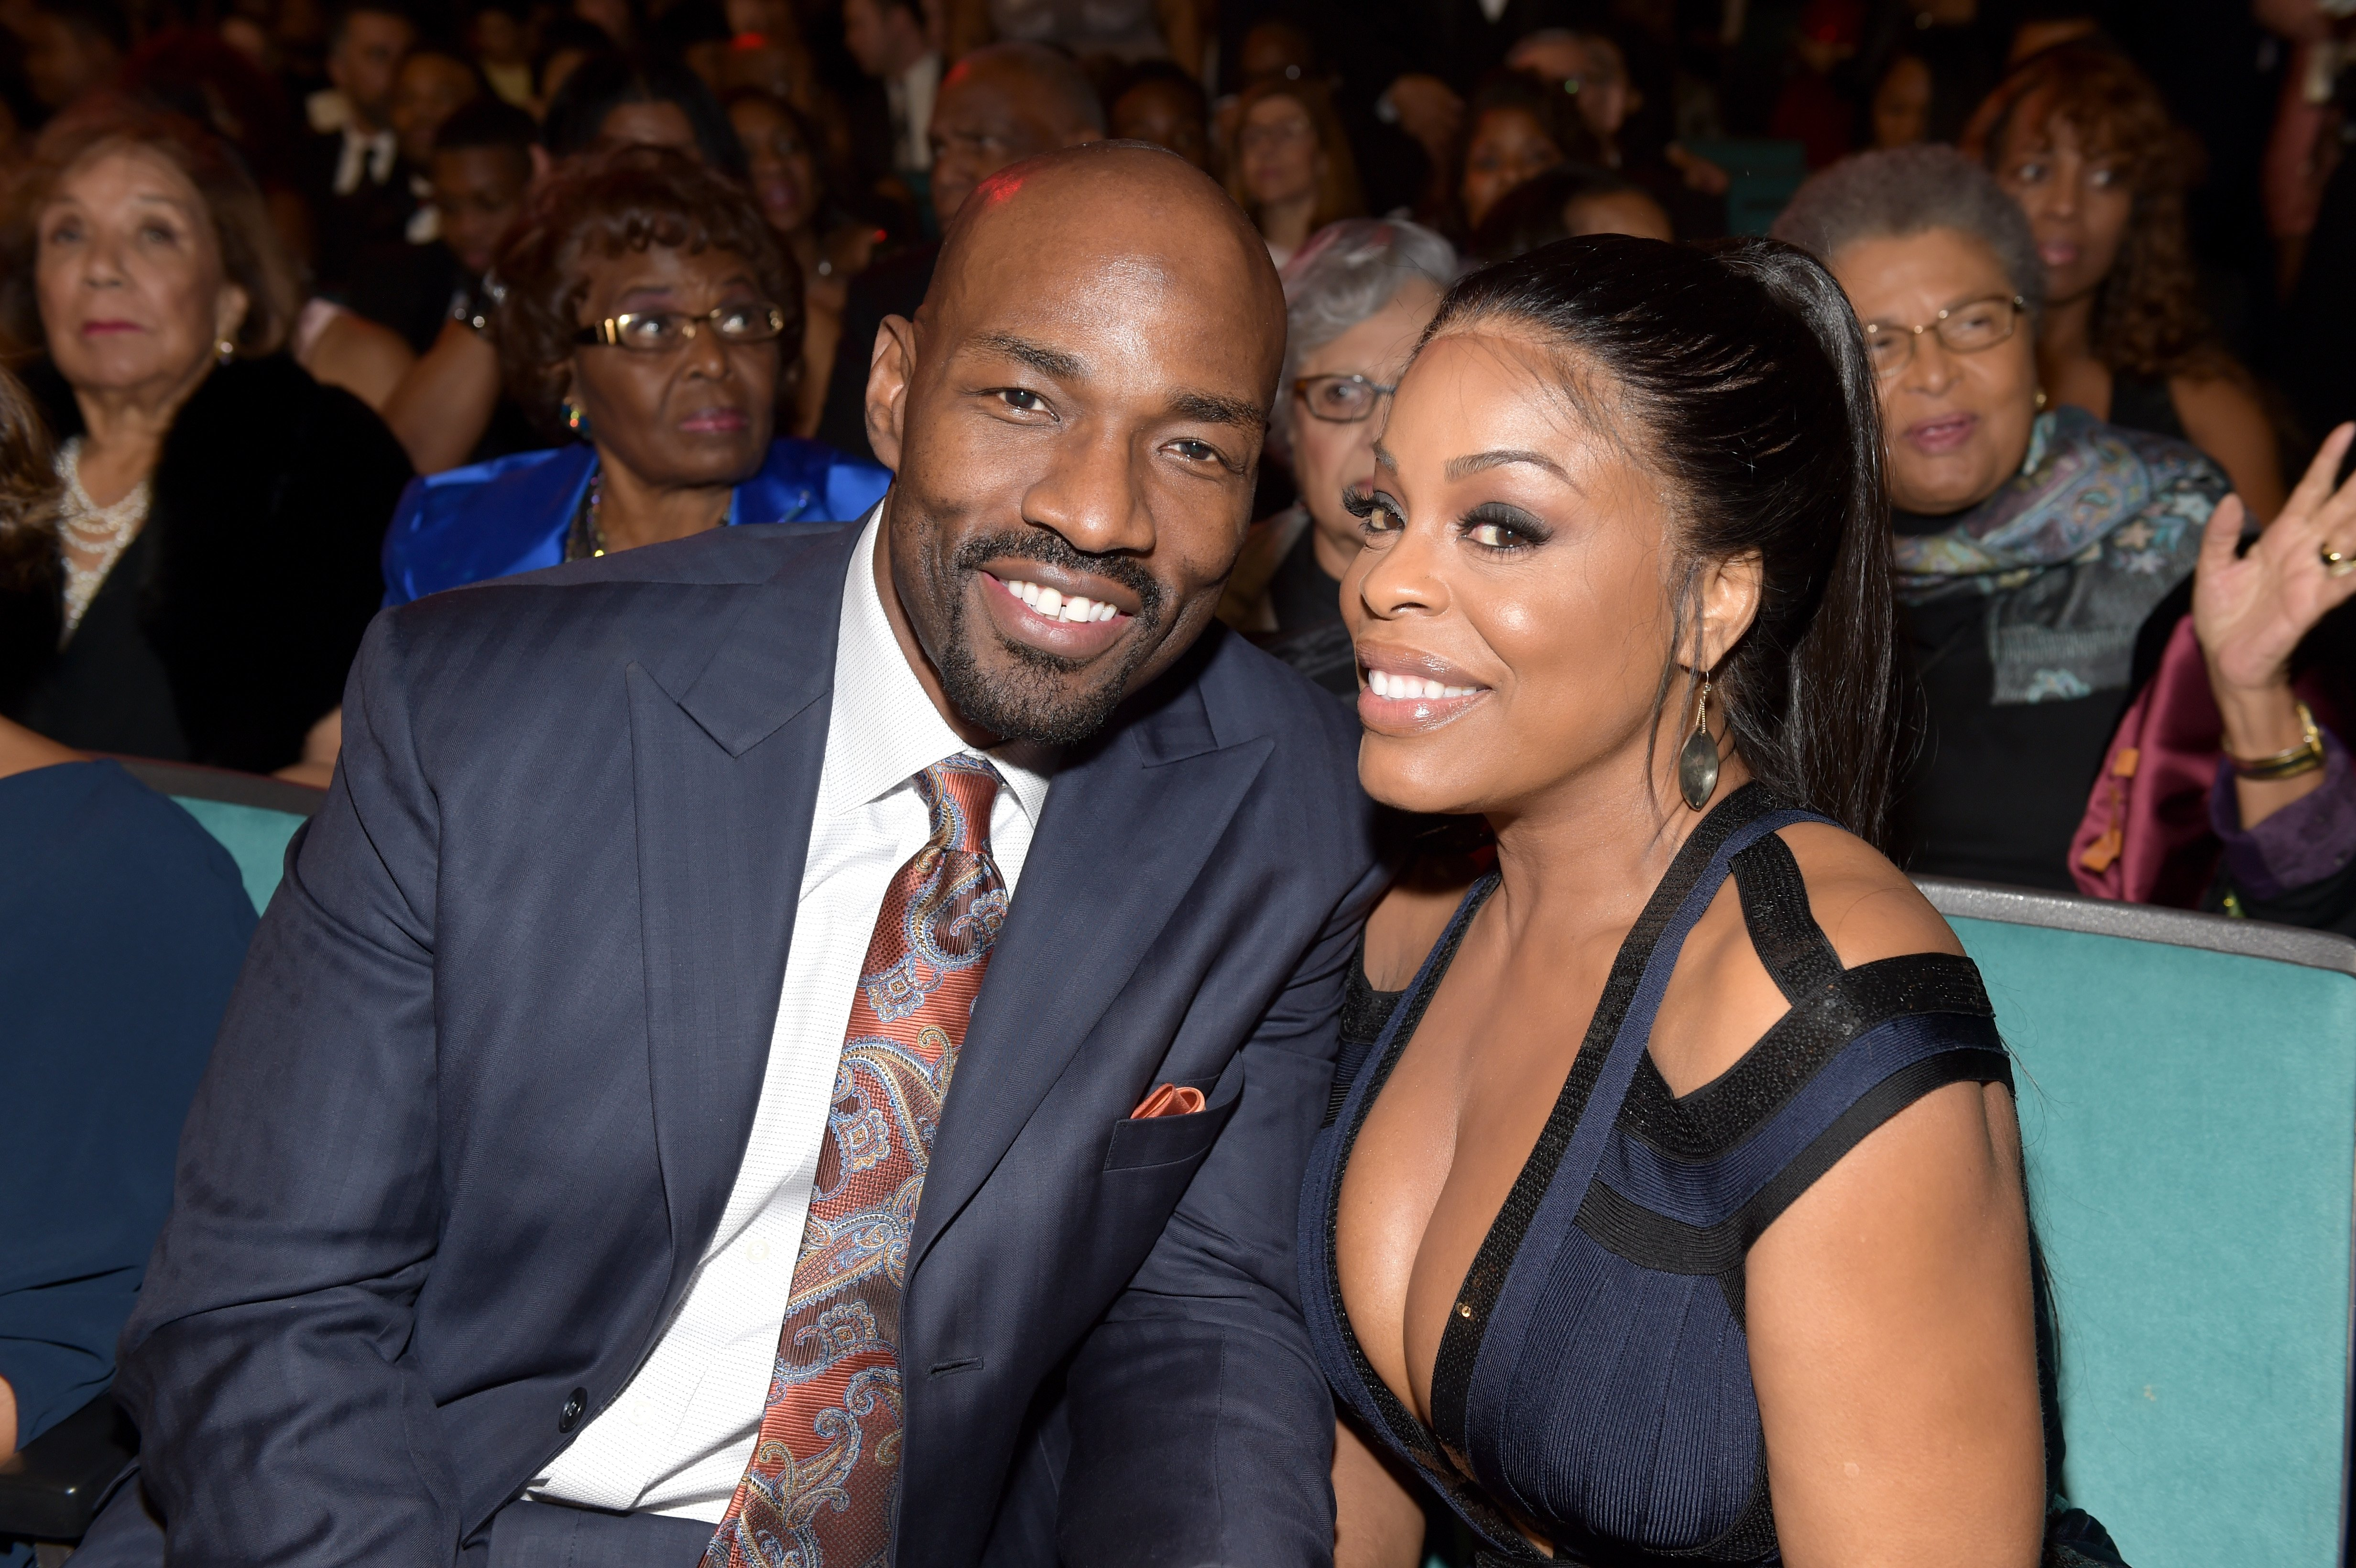 Jay Tucker and Niecy Nash at the 48th NAACP Image Awards in 2017. | Photo: Getty Images